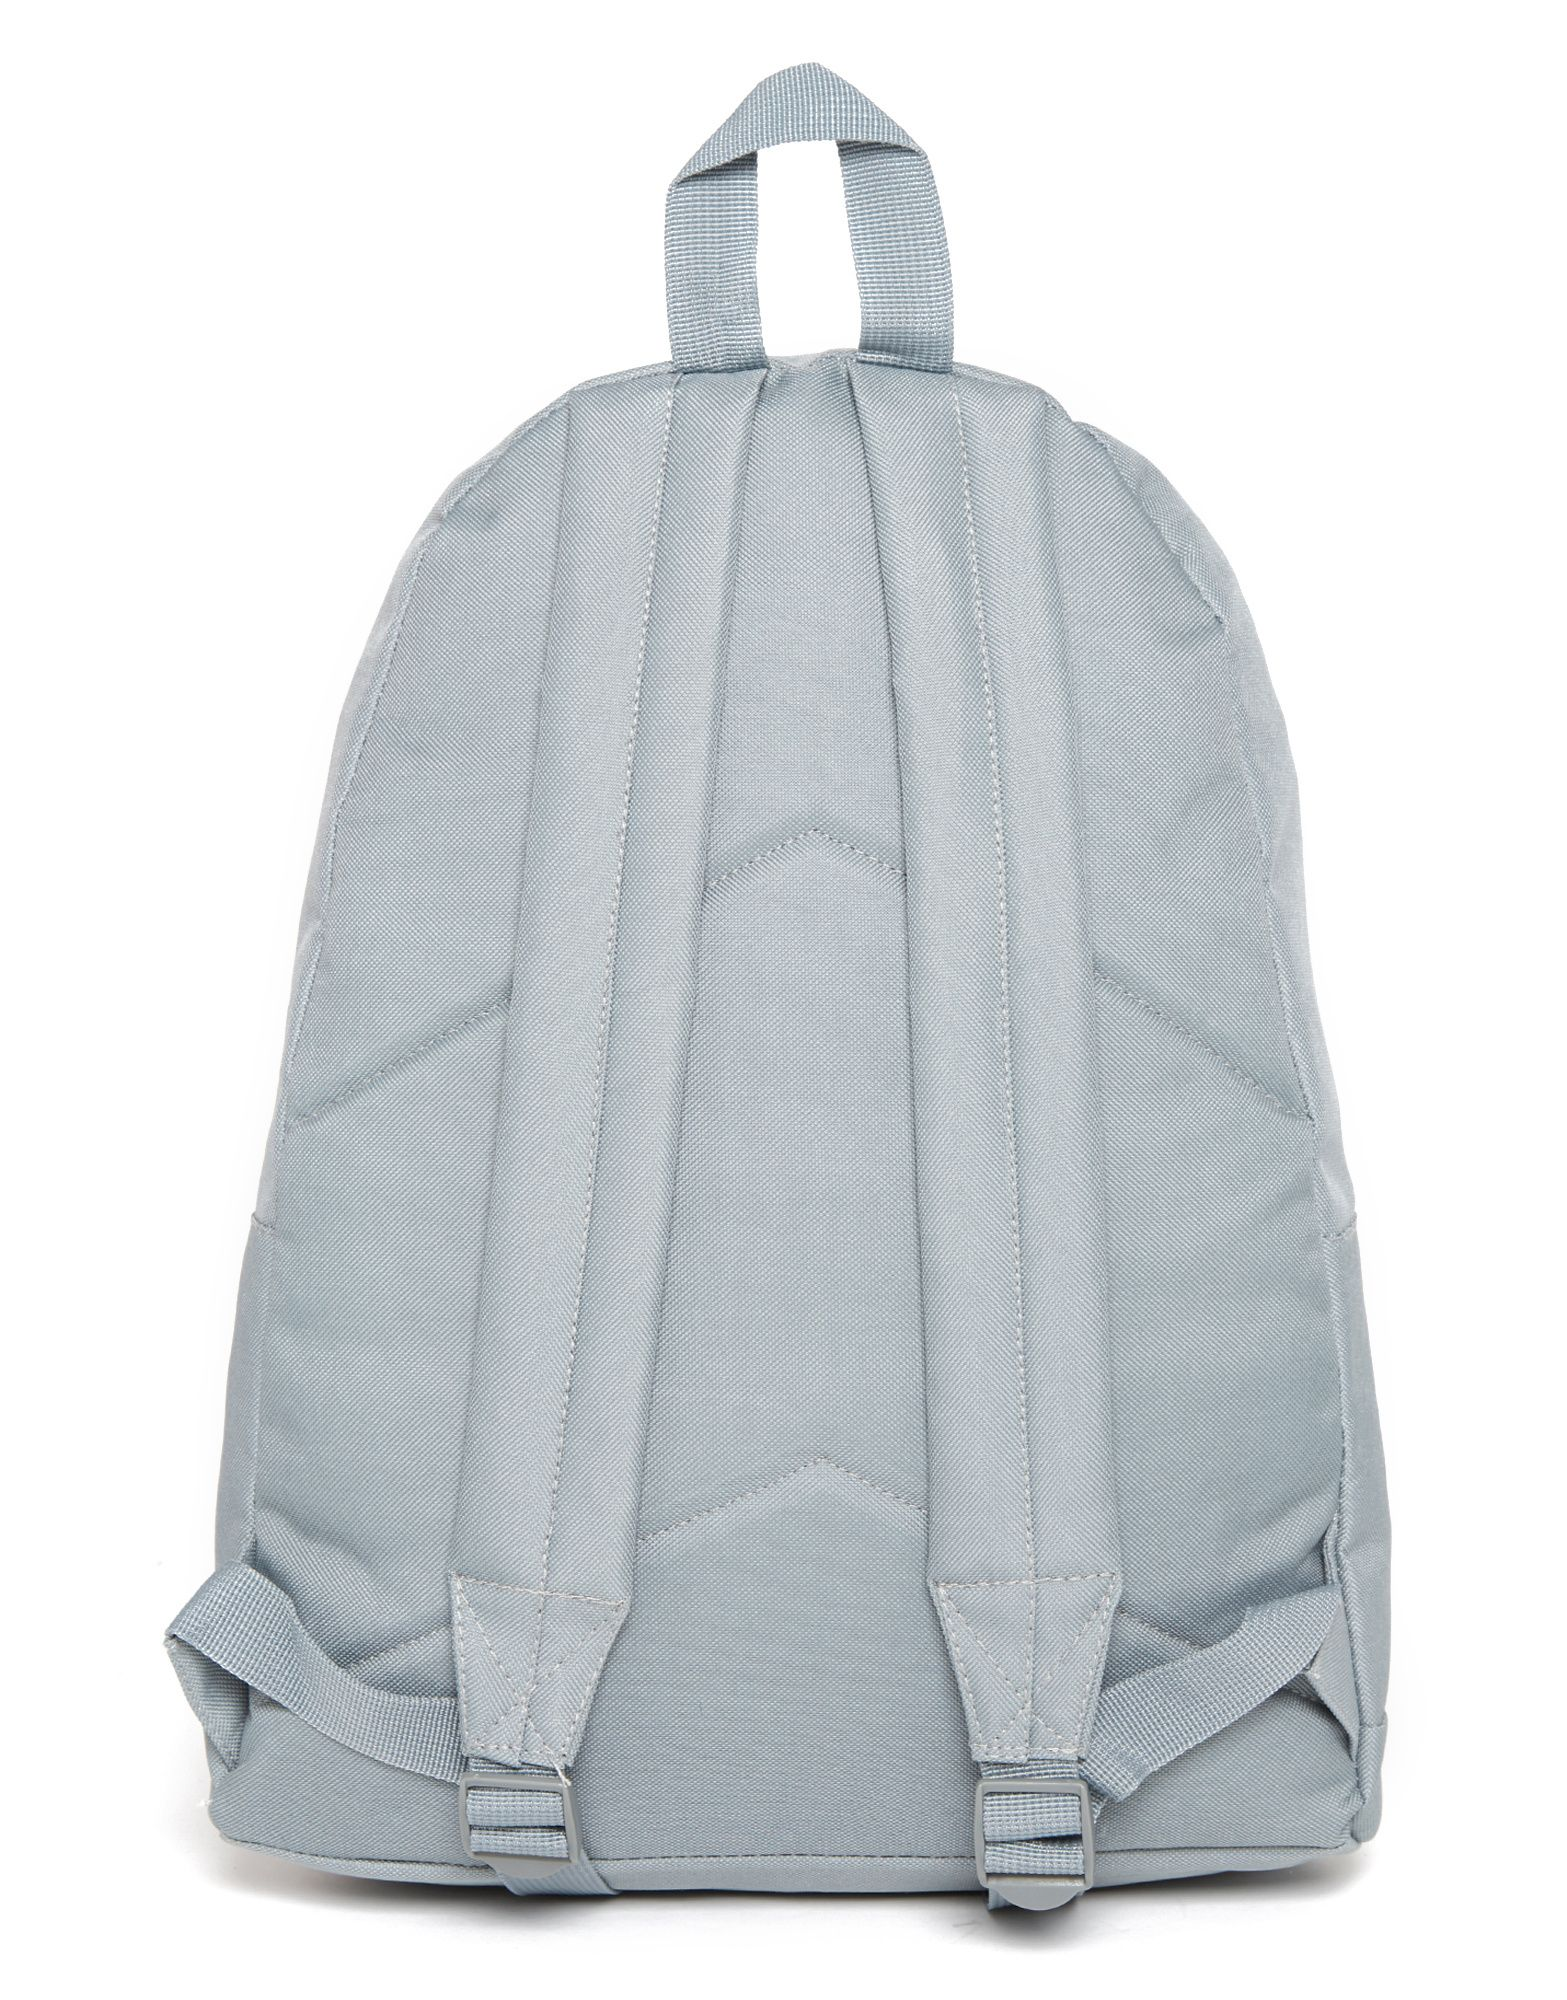 Duffer of St George Pinewood Backpack